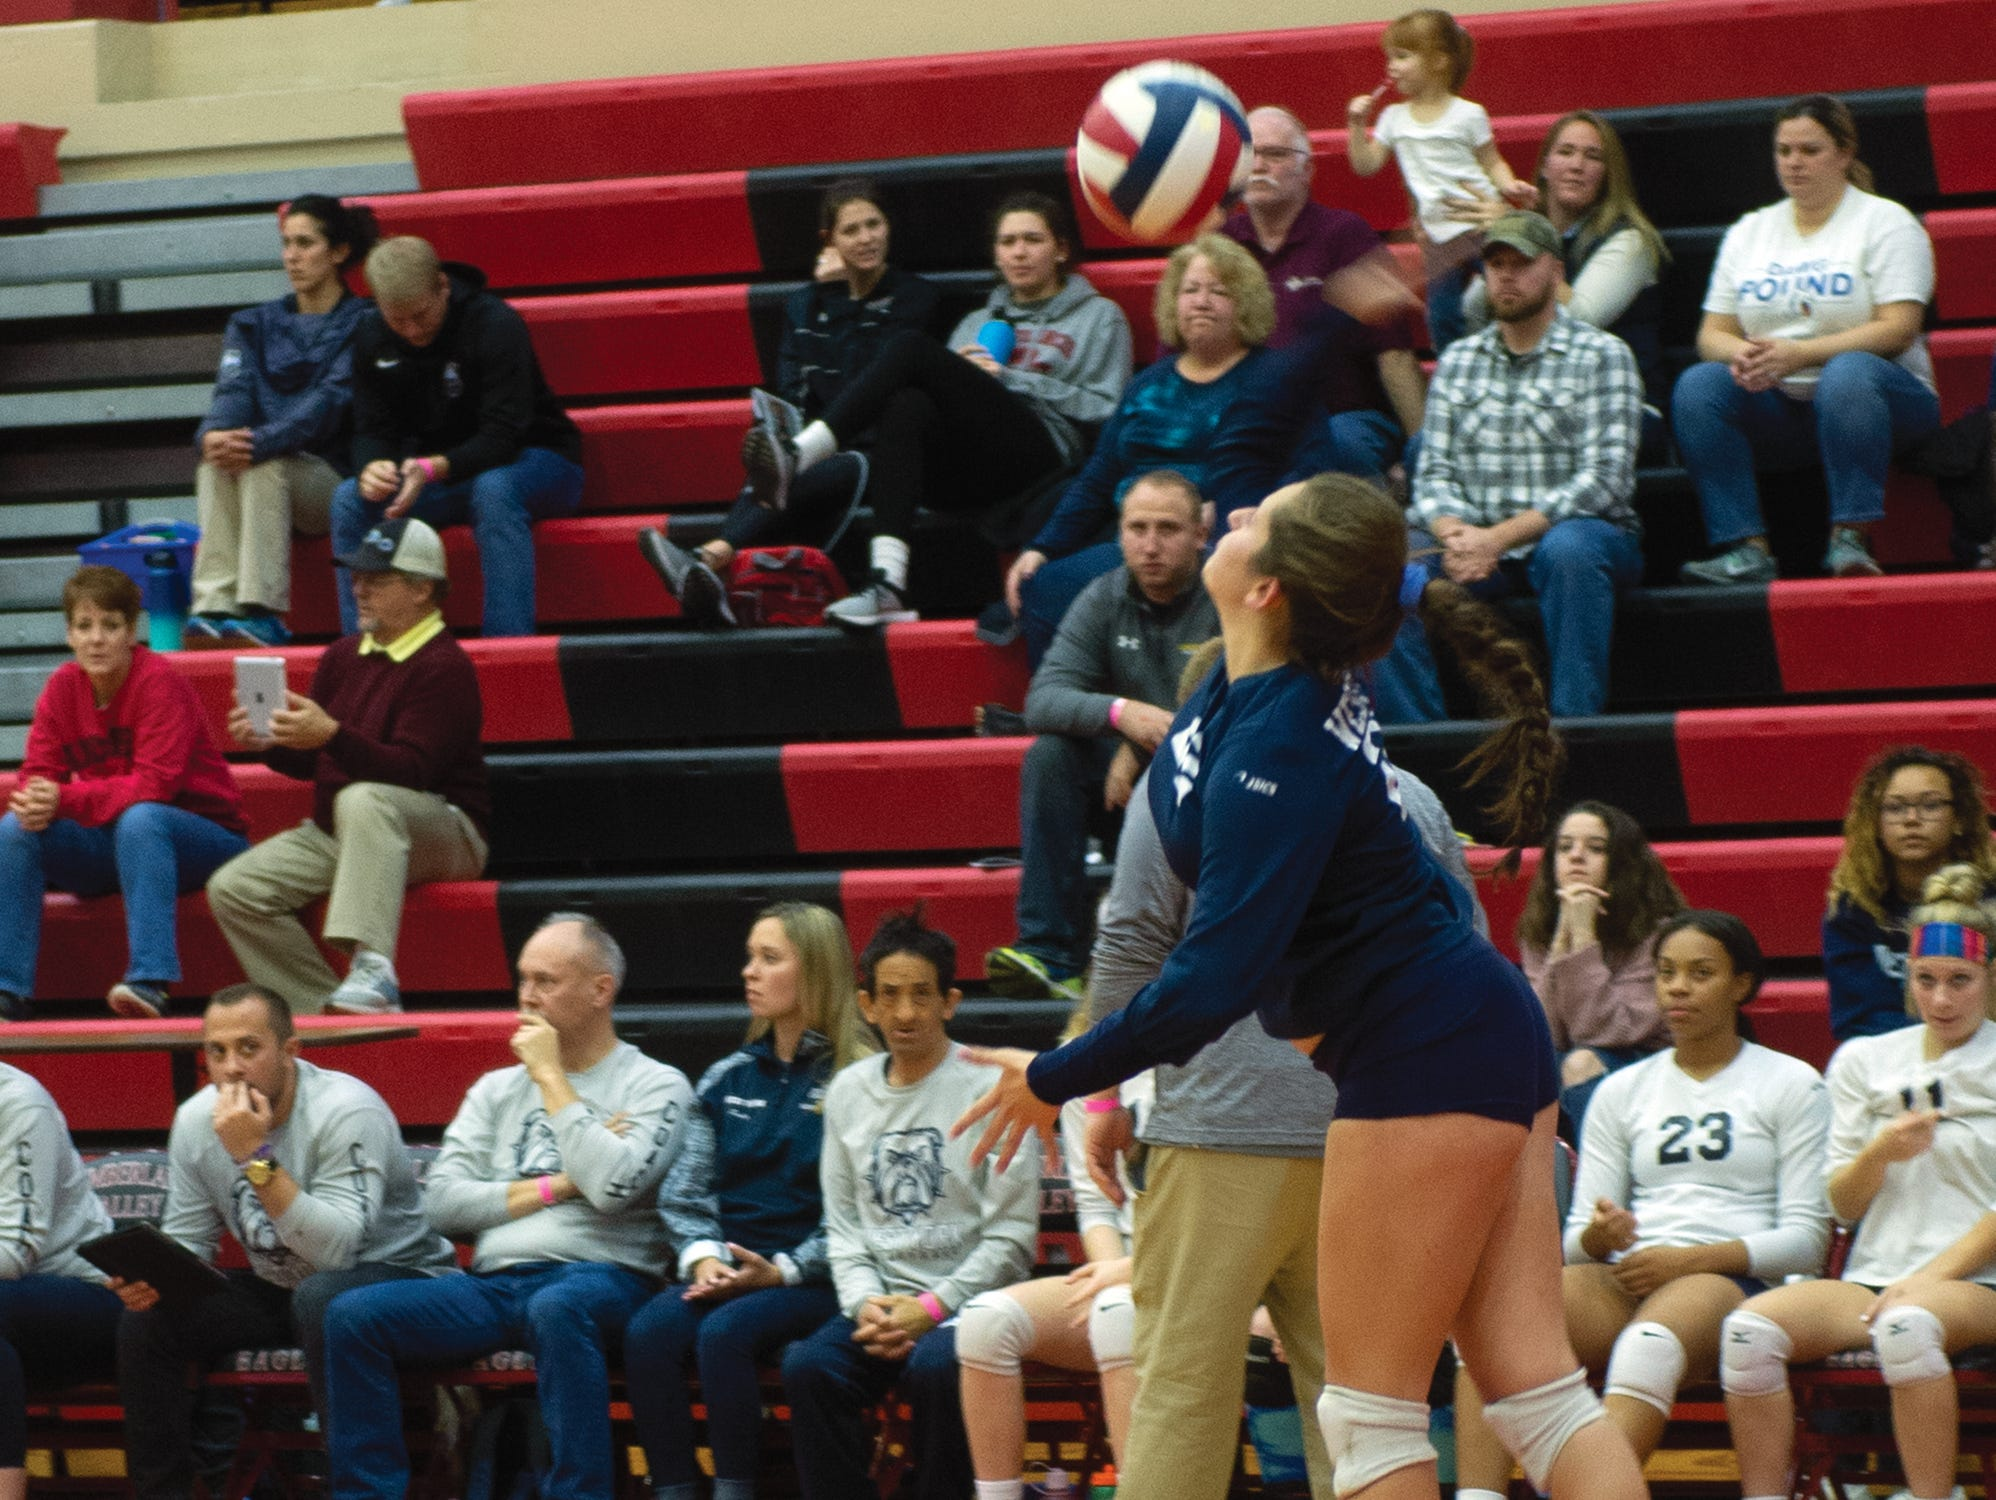 West York libero Kambrie Hepler serves in the final game of the Bulldogs' 3-0 win over Warren in Saturday's PIAA Class 3A girls' volleyball championship at Cumberland Valley High School.